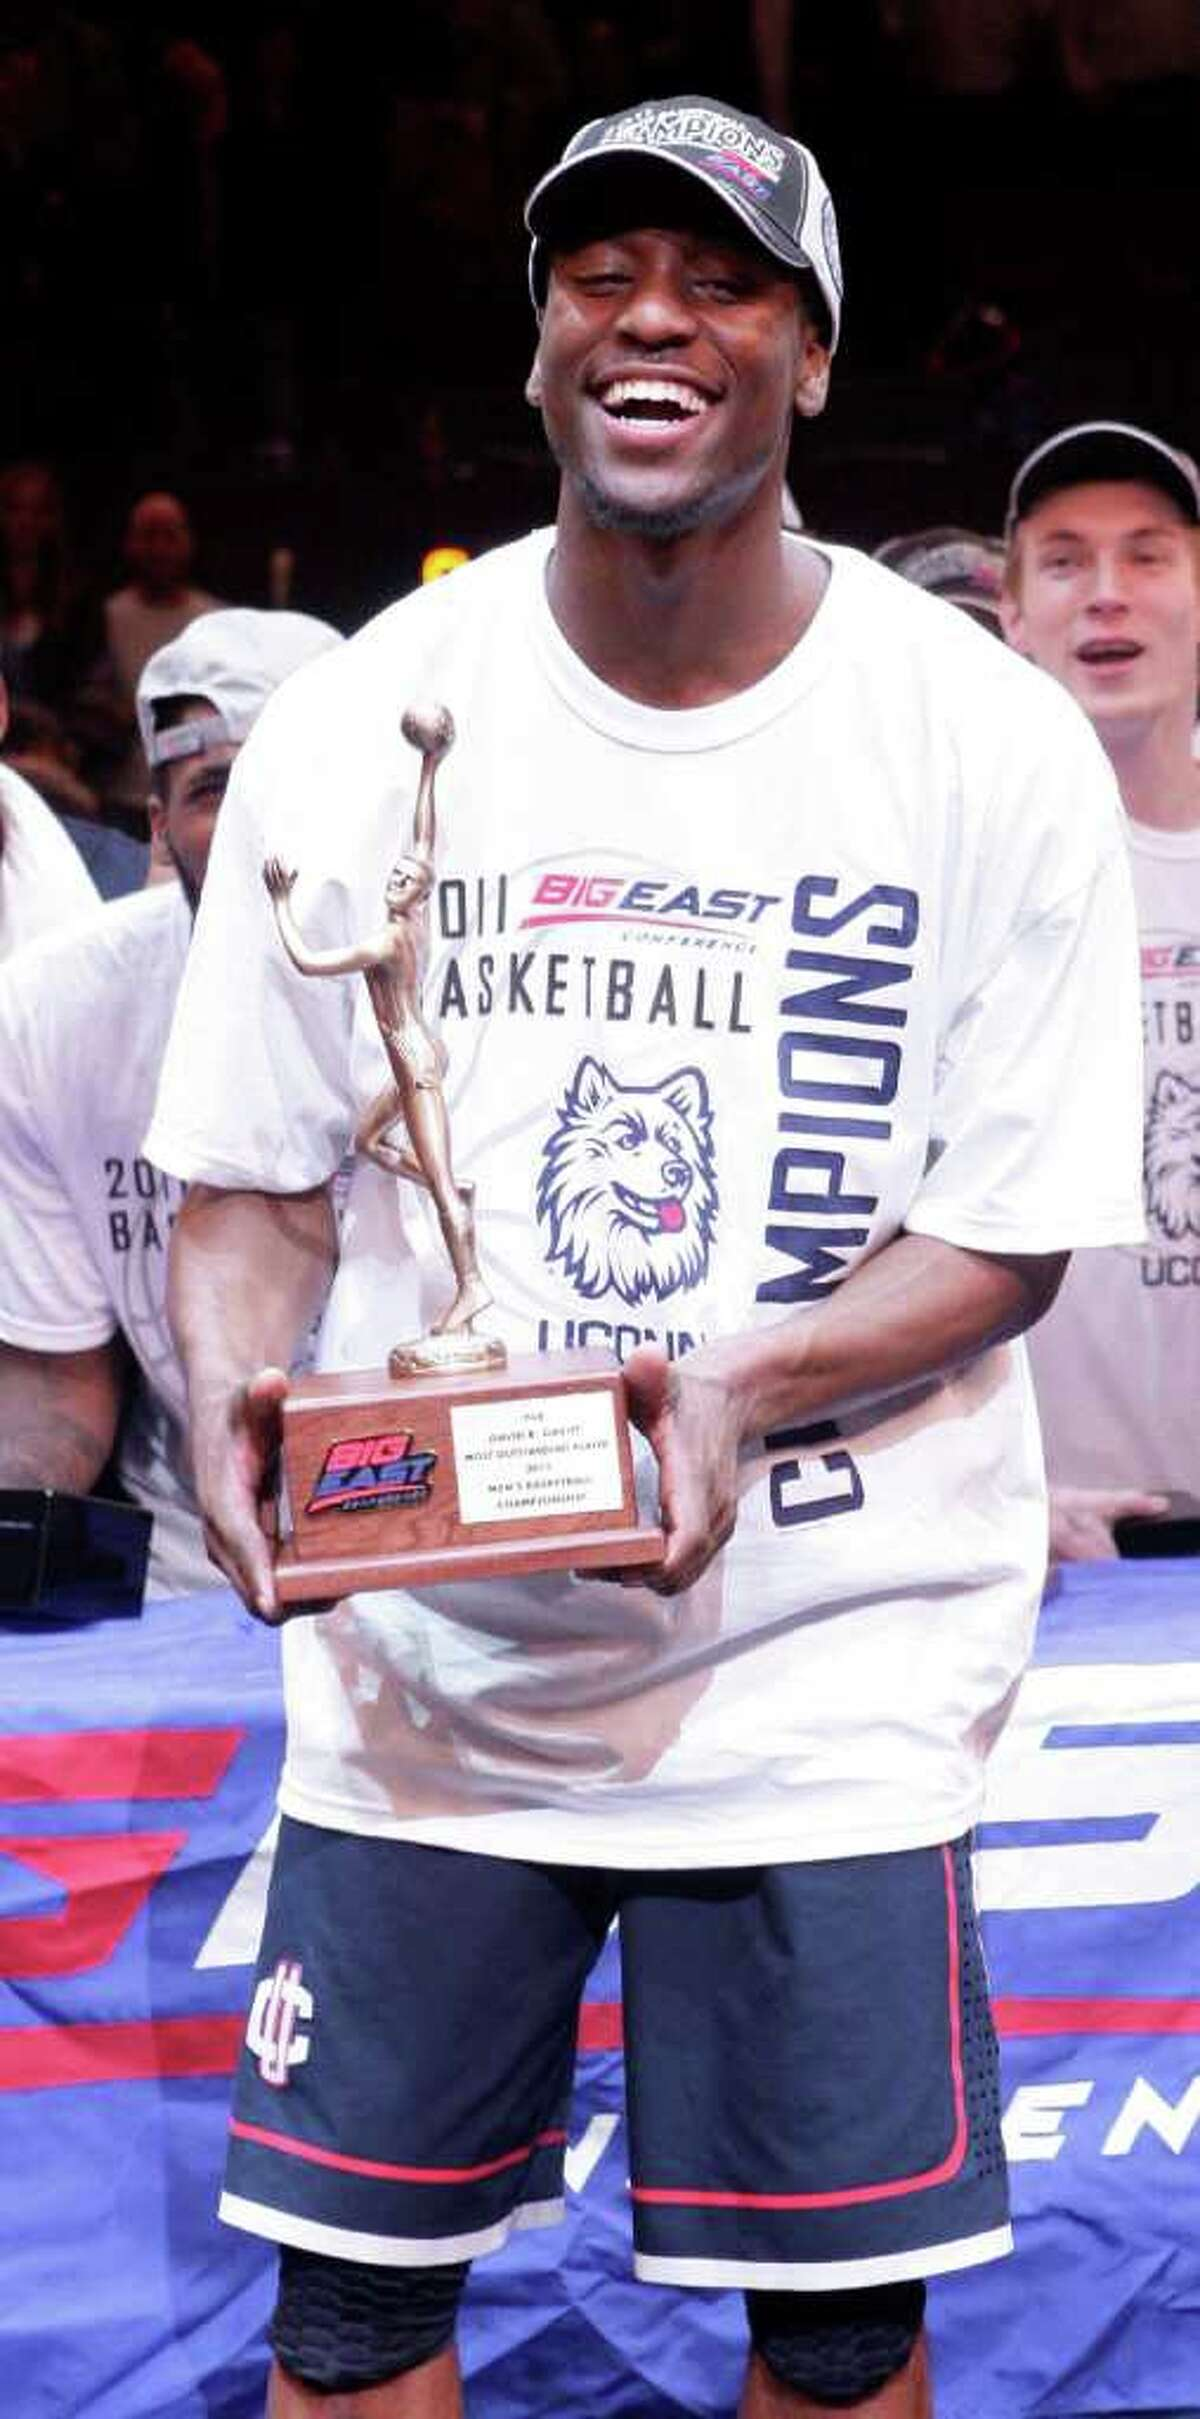 Connecticut's Kemba Walker (15) holds the Most Outstanding player trophy after an NCAA college basketball game against Louisville at the Big East Championship Saturday, March 12, 2011, in New York. Connecticut won the game 69-66. (AP Photo/Frank Franklin II)